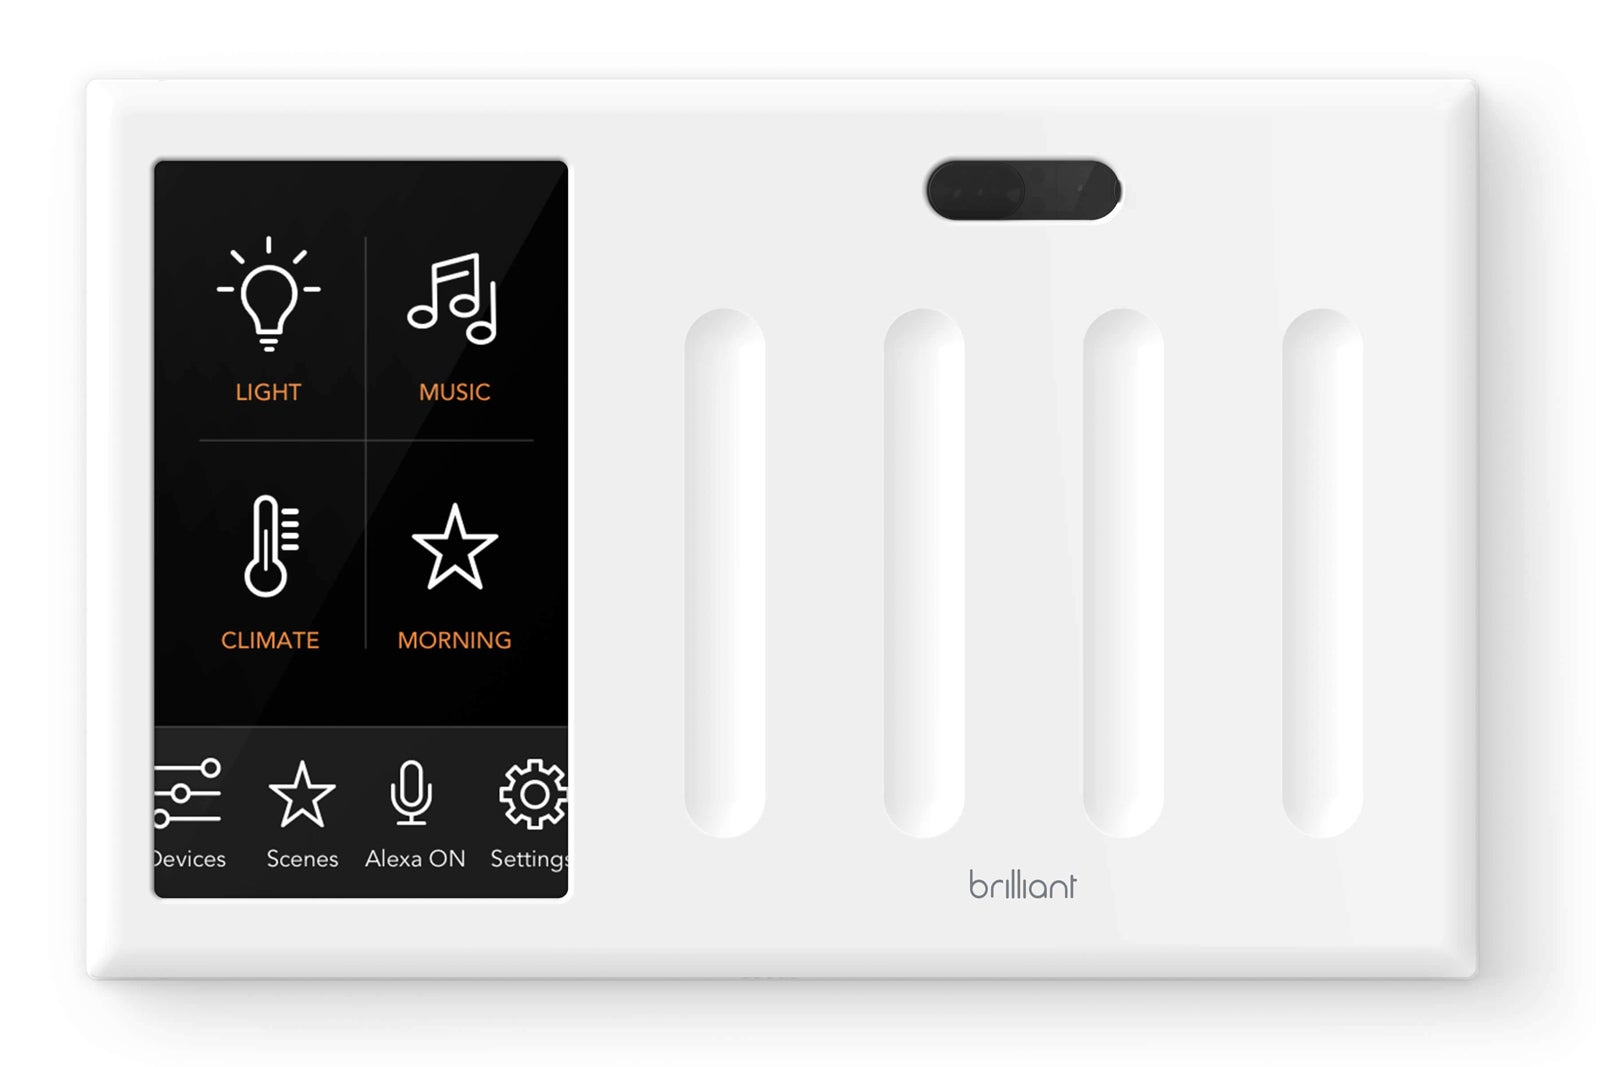 Brilliant Control Review Impressive Blend Of Switch And Smart Home Musical Doorbell Circuit With Over Door Light Controller But Theres Room For Improvement Techhive